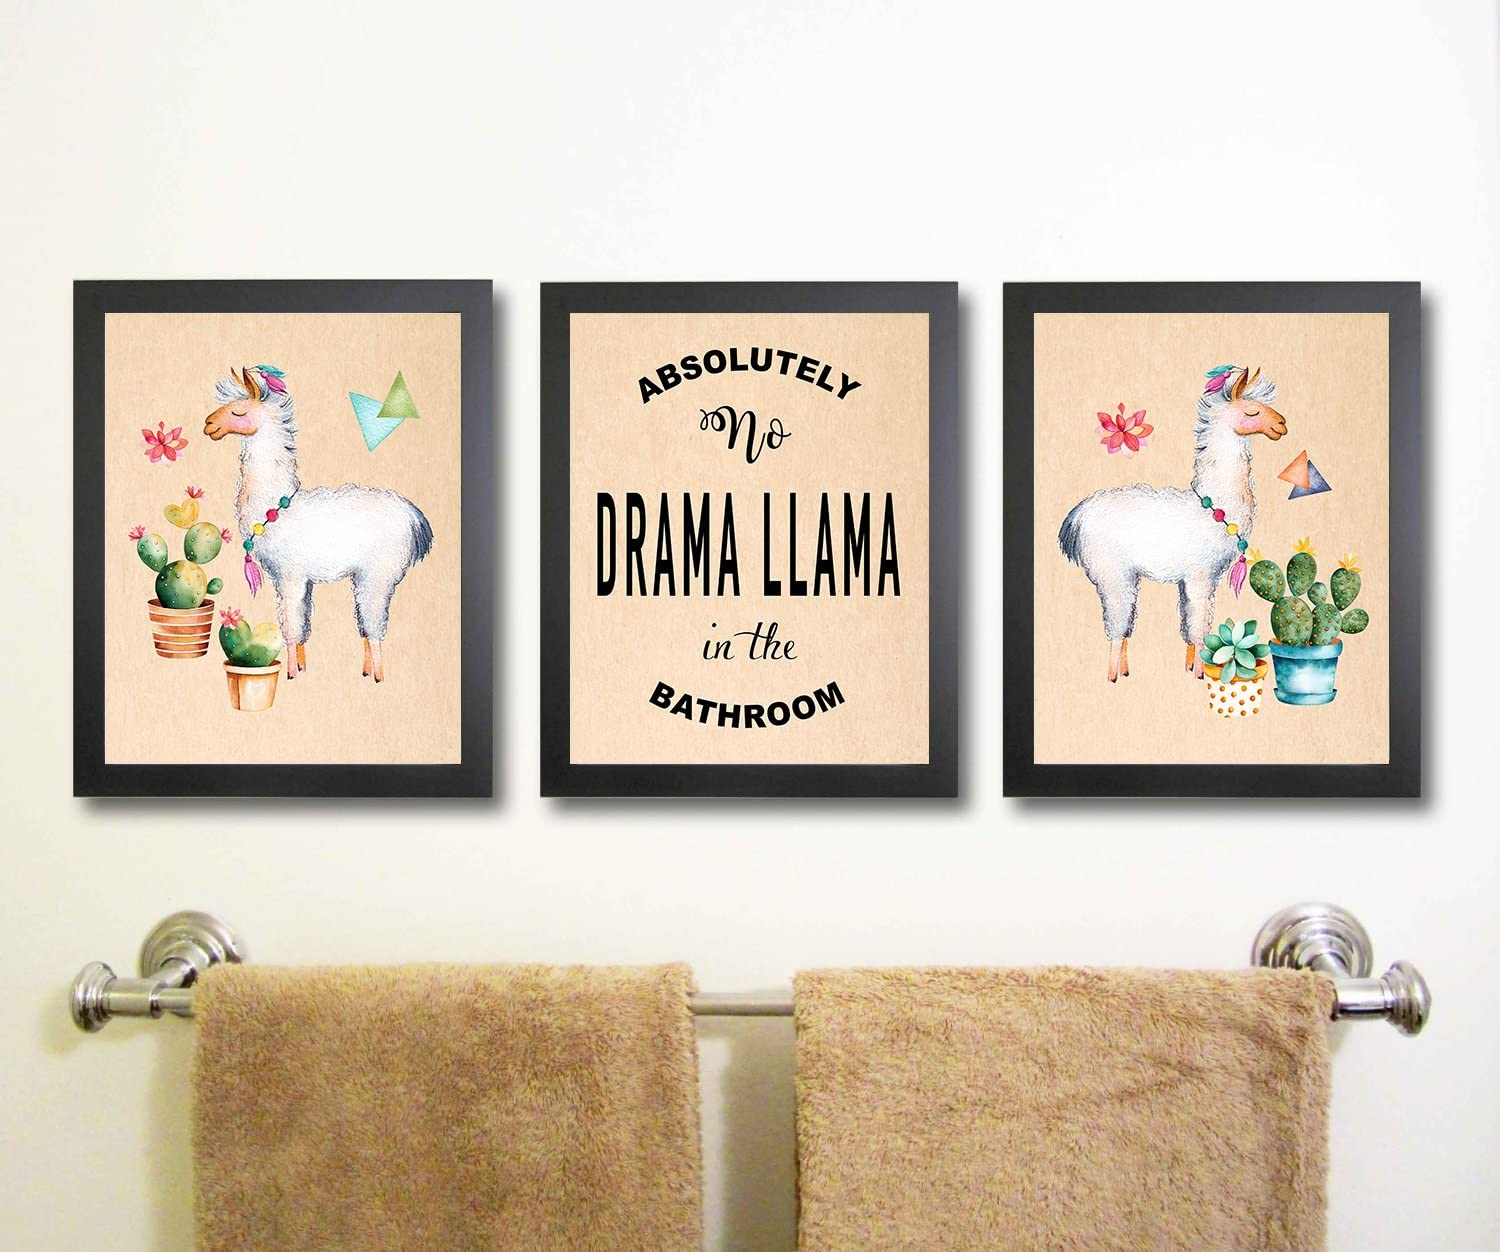 Silly Goose Gifts Llama Themed Bathroom Wall Art Print Decoration (Set of 3) (Llama Drama)